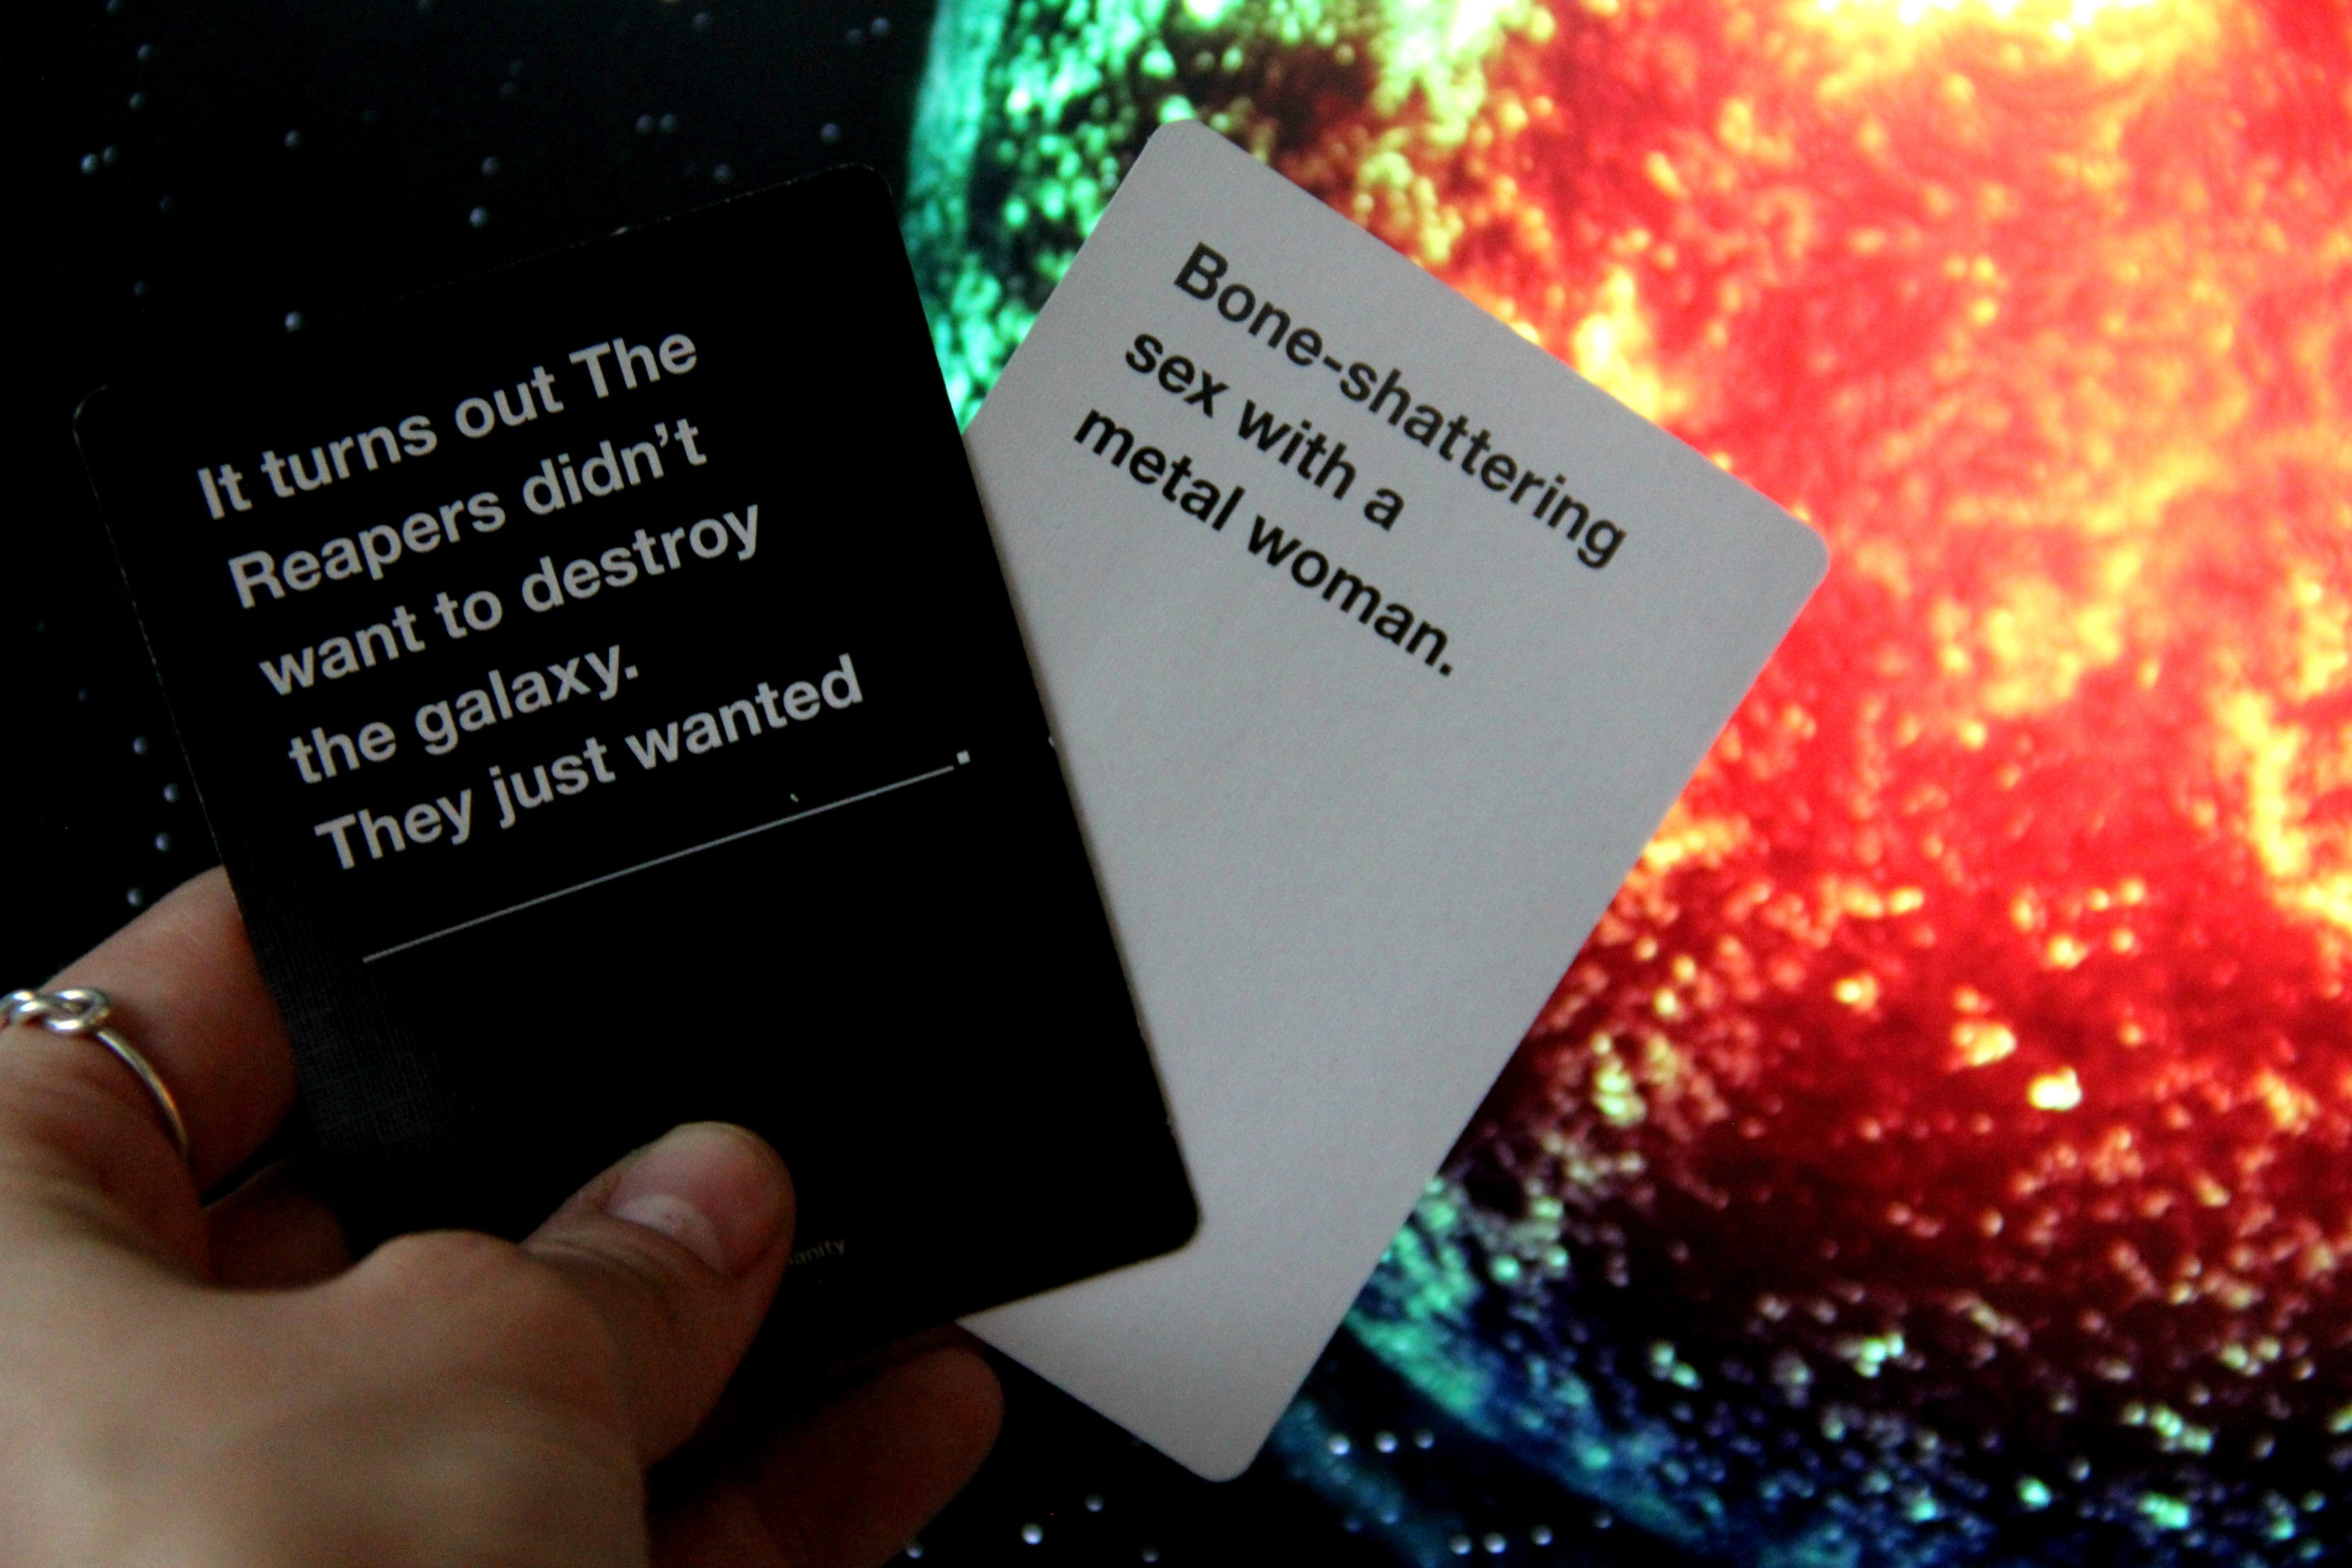 mass effect, bioware, cards against humanity